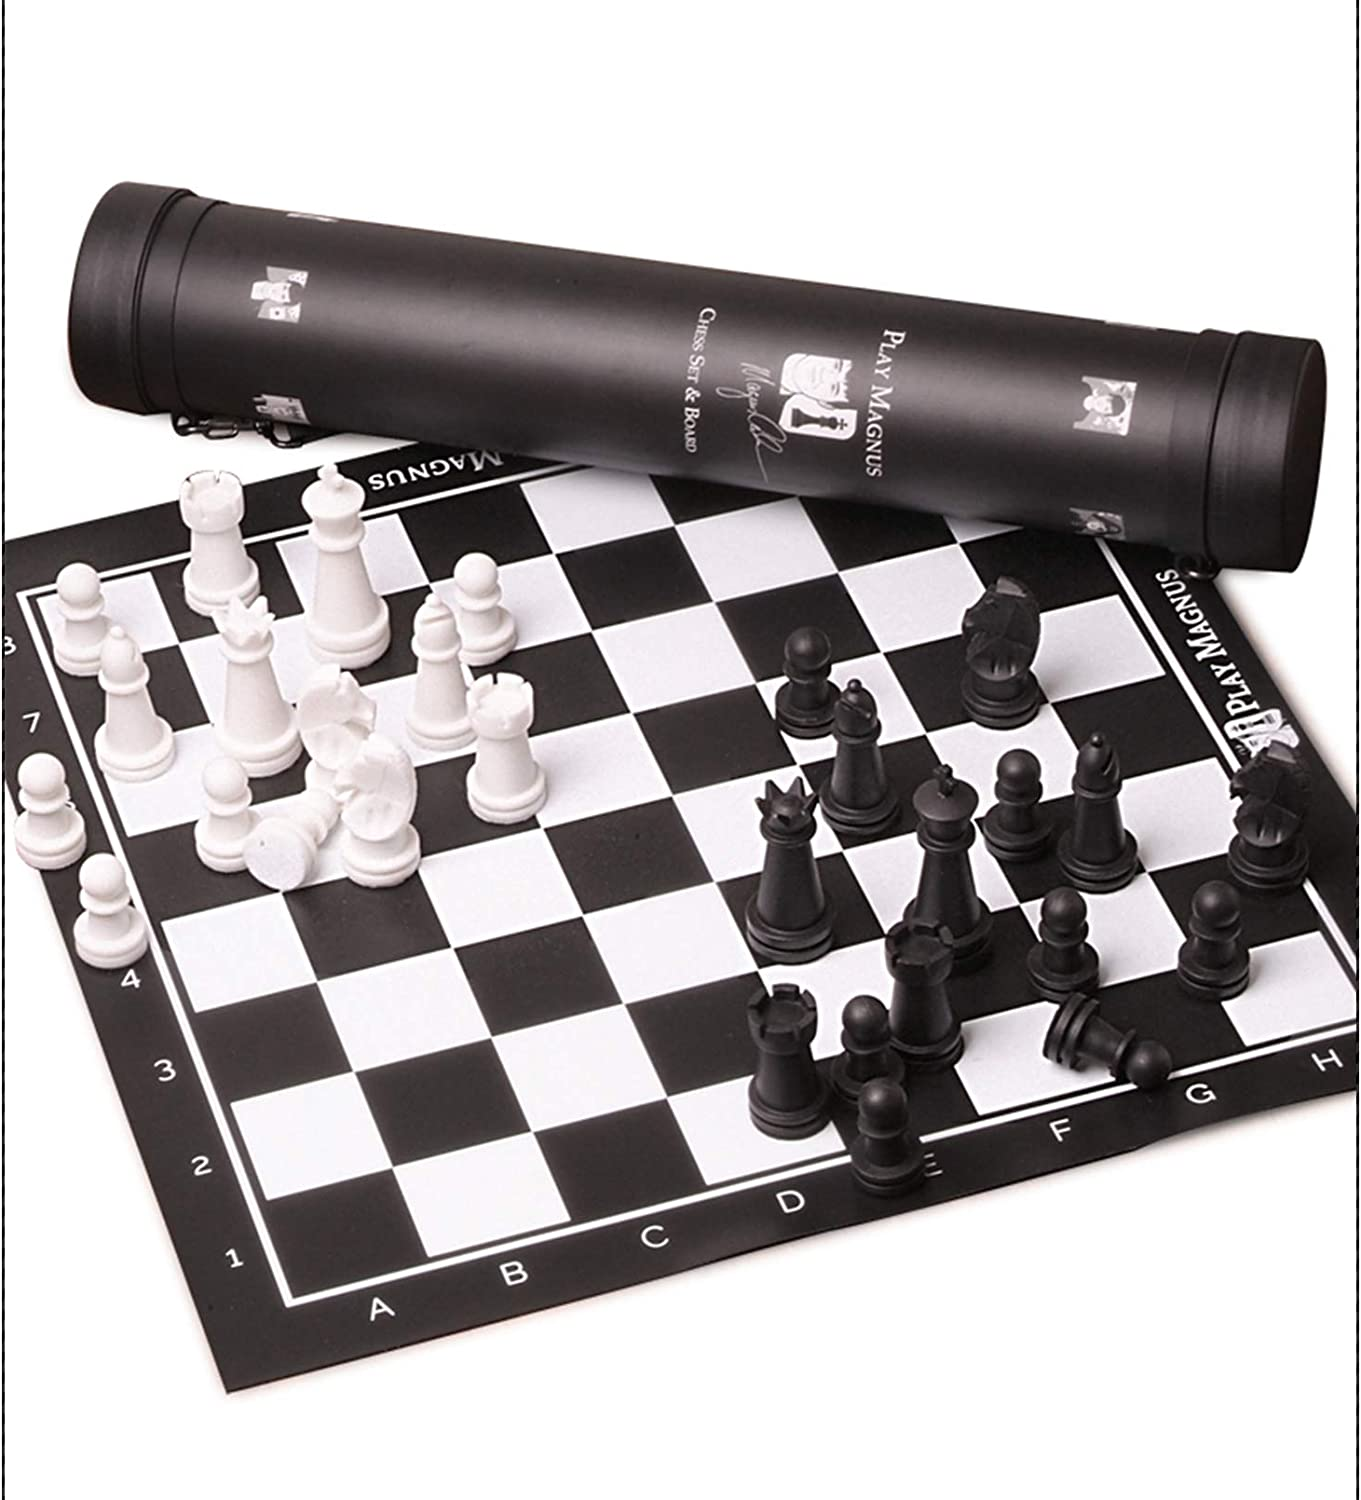 Chess Board Games for Kids Acrylic Adults shopping Today's only Iigh and Pieces